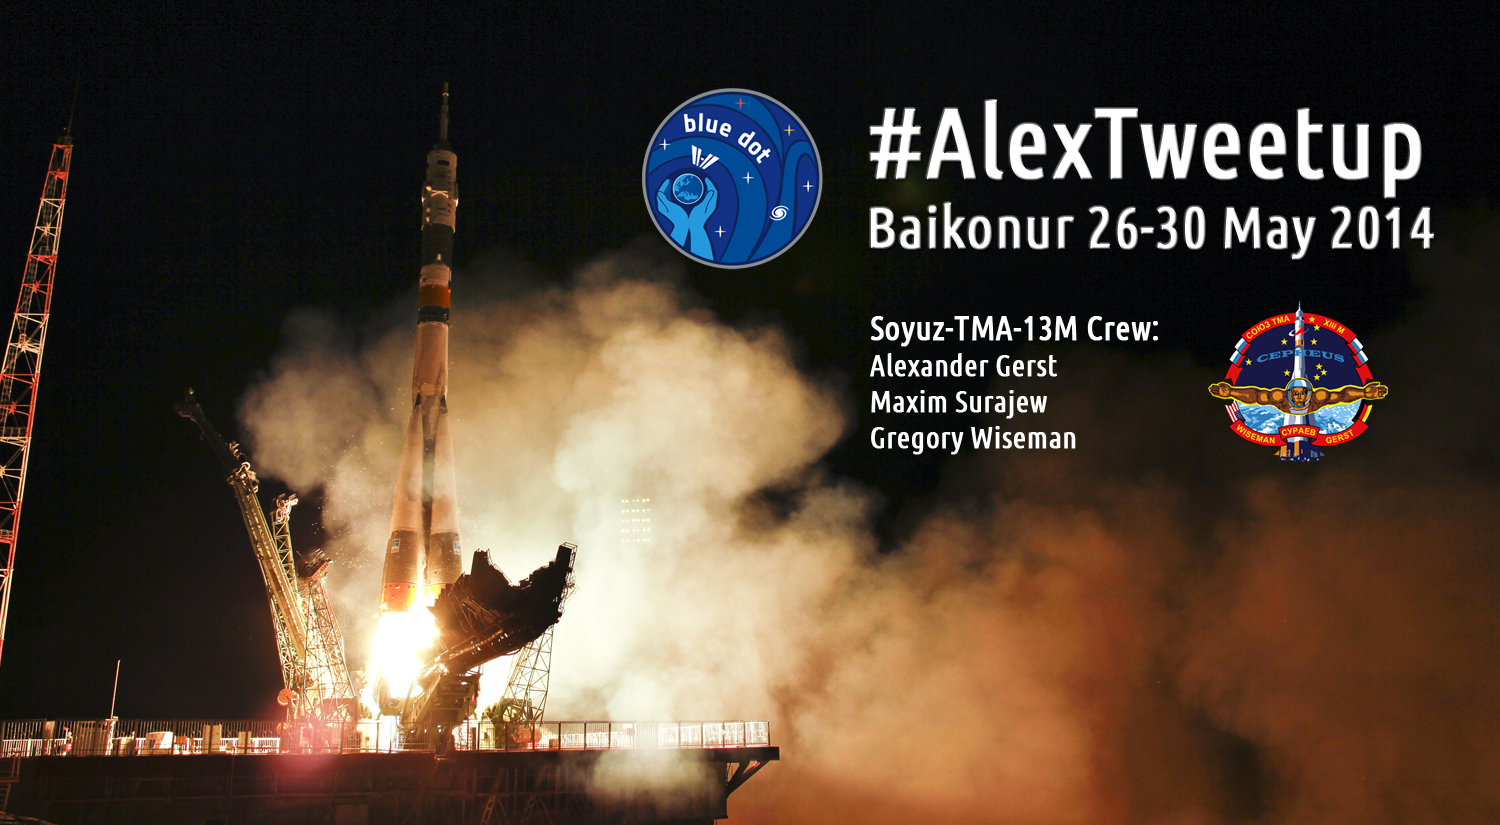 #AlexTweetup: Now it's getting real